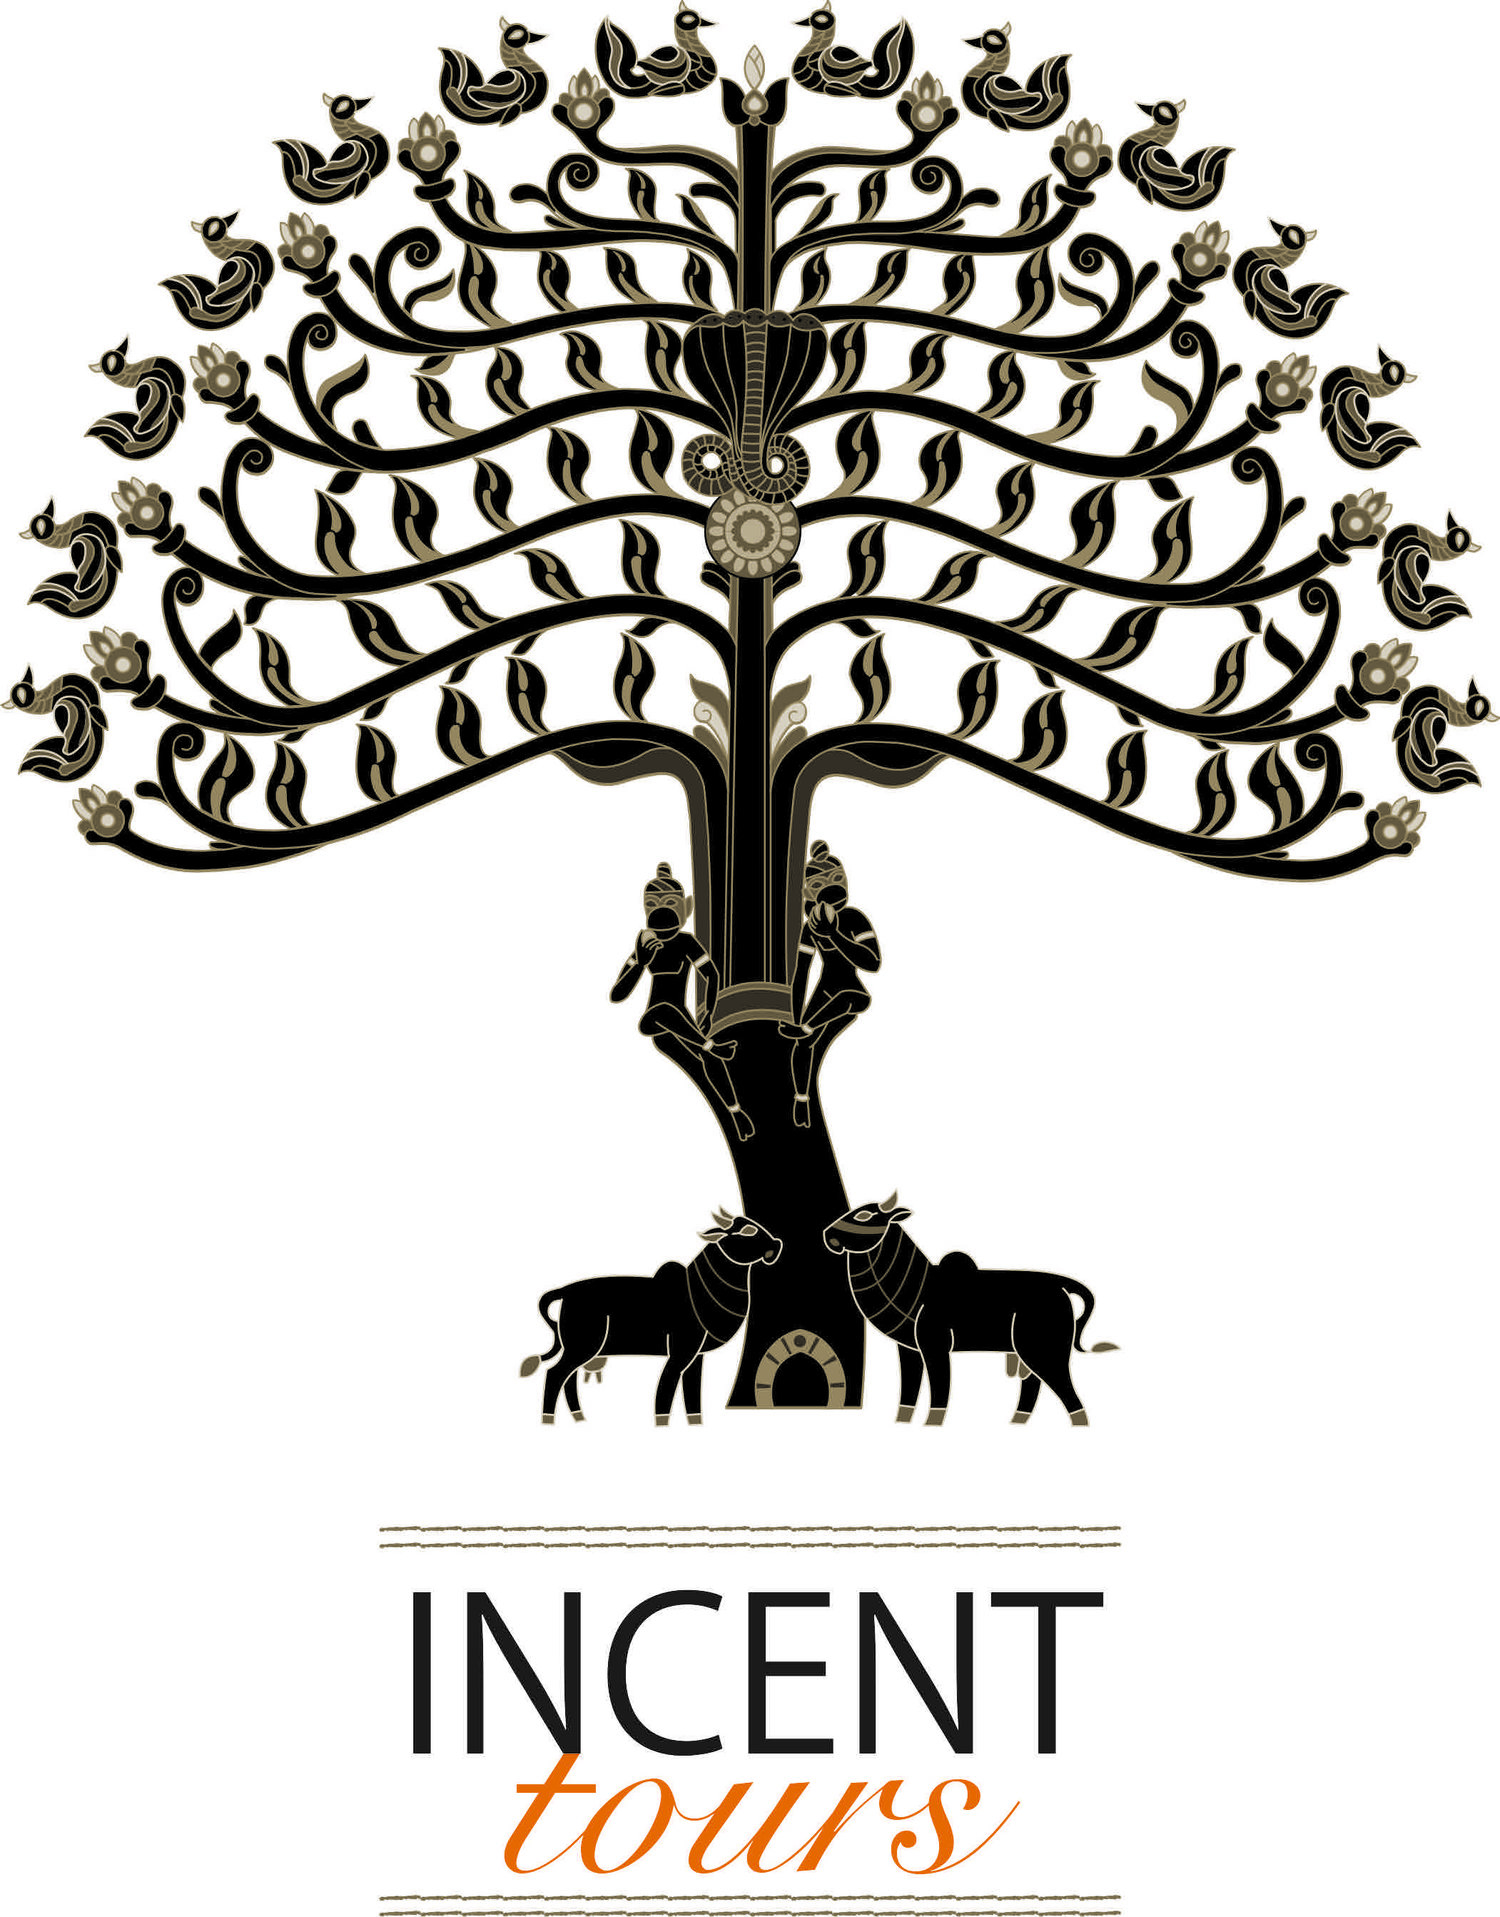 Incent Tours